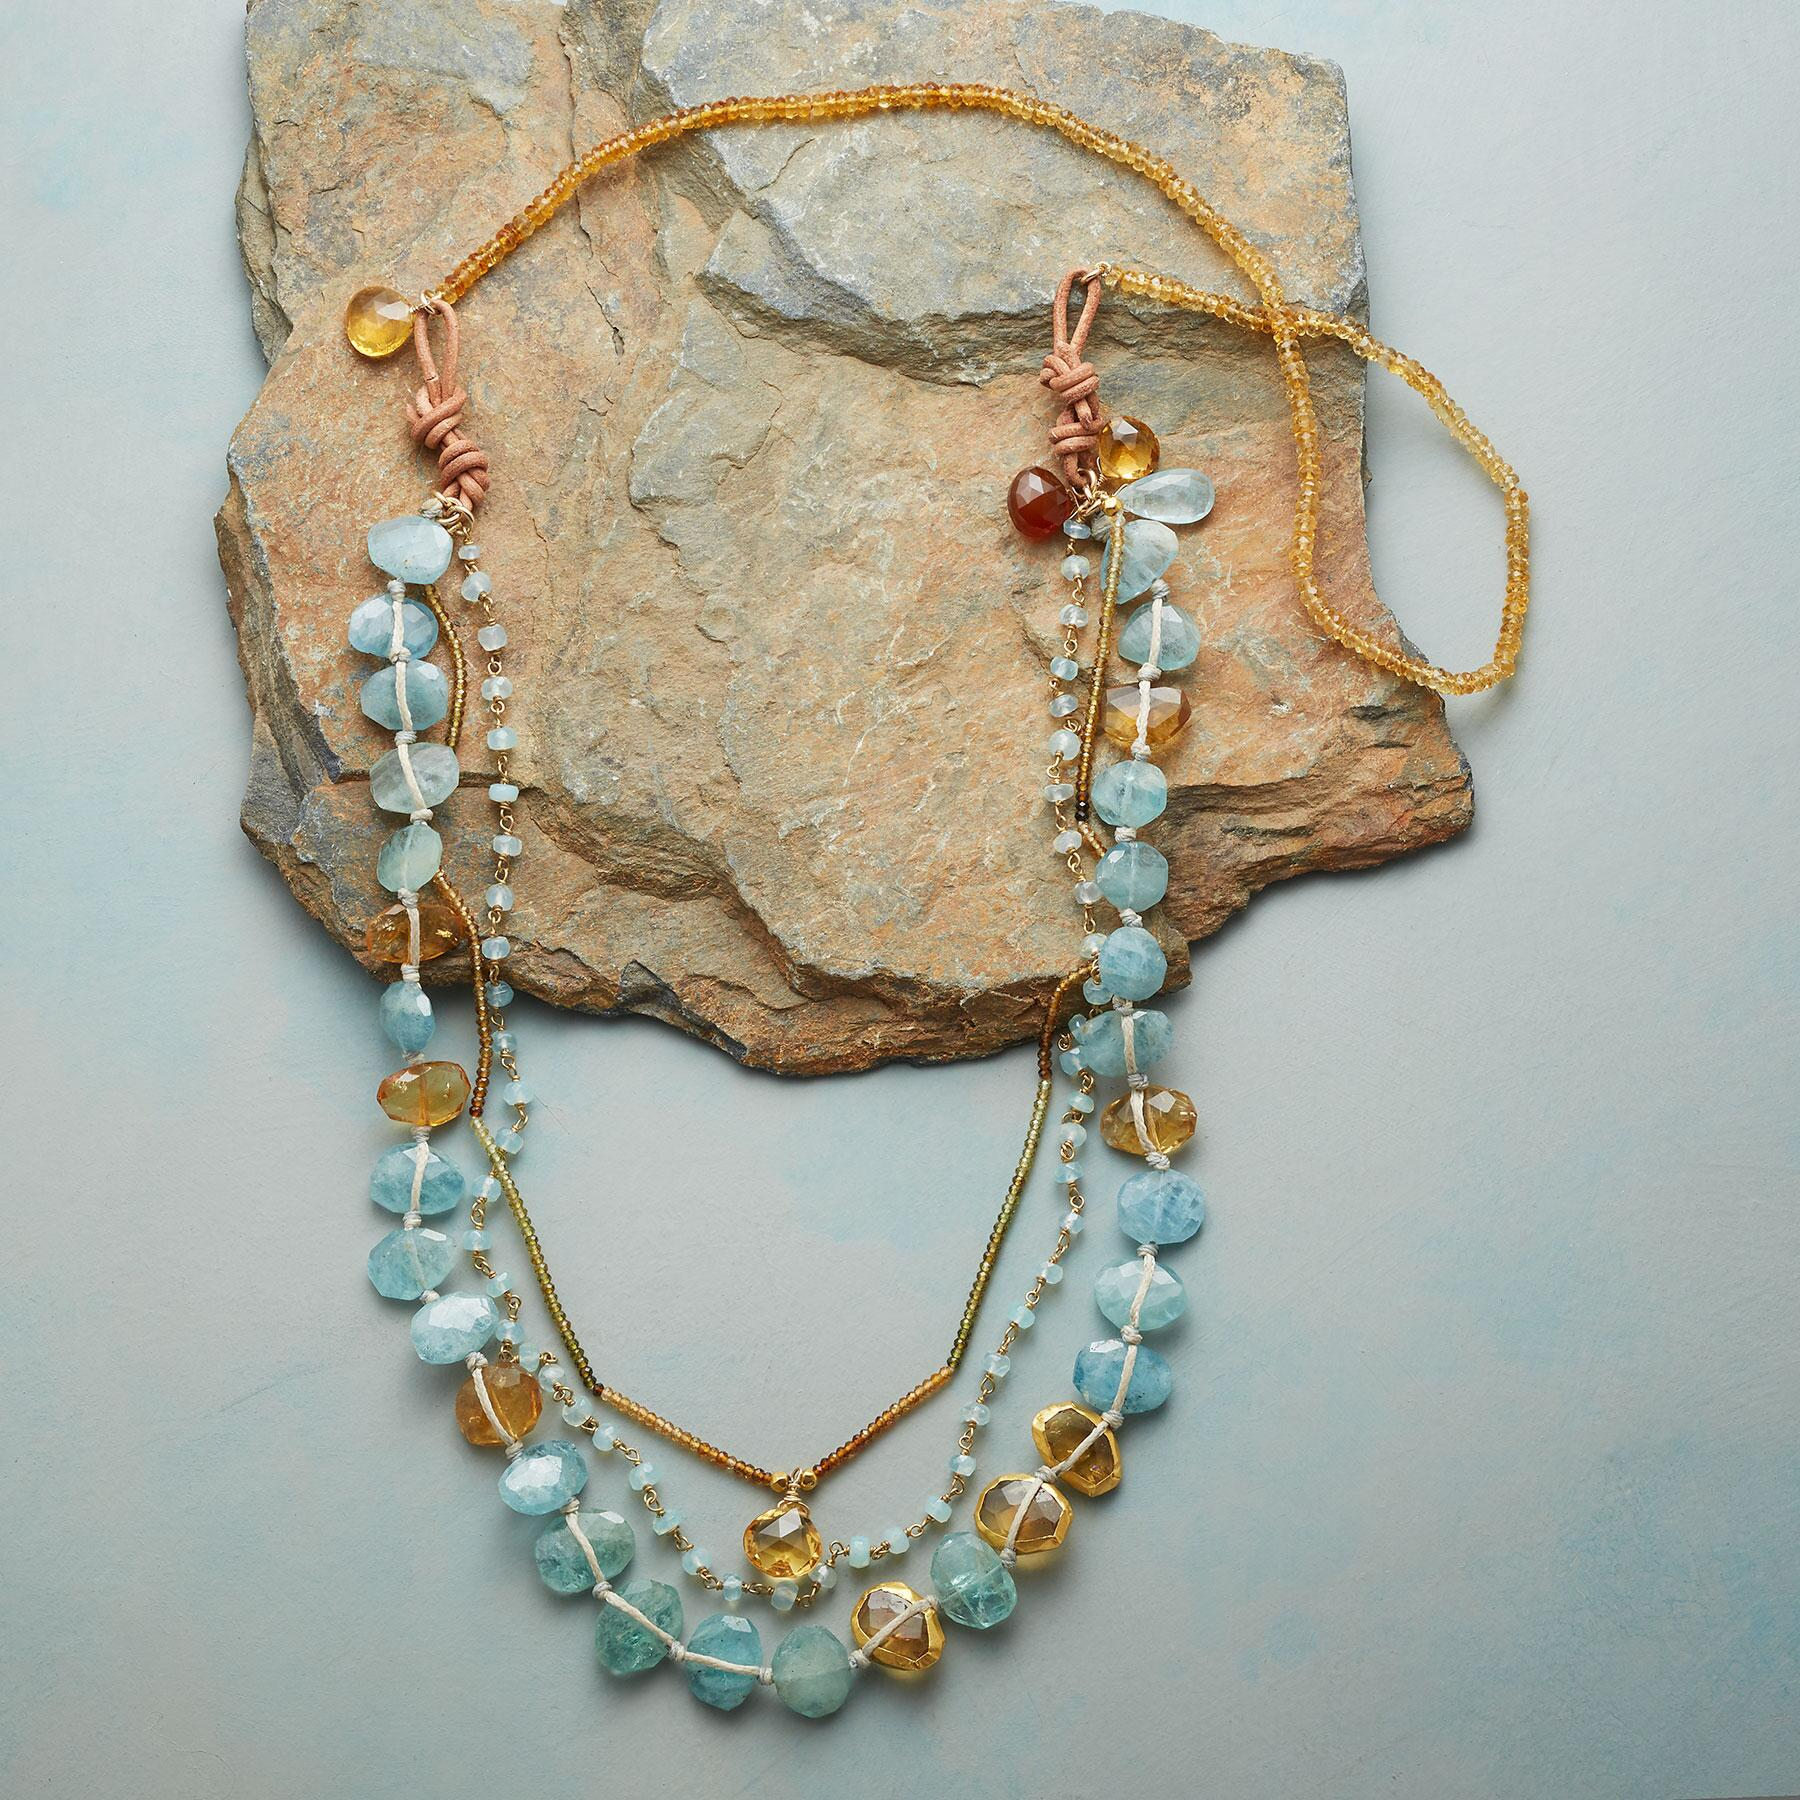 SHORELINE TREASURES NECKLACE: View 2